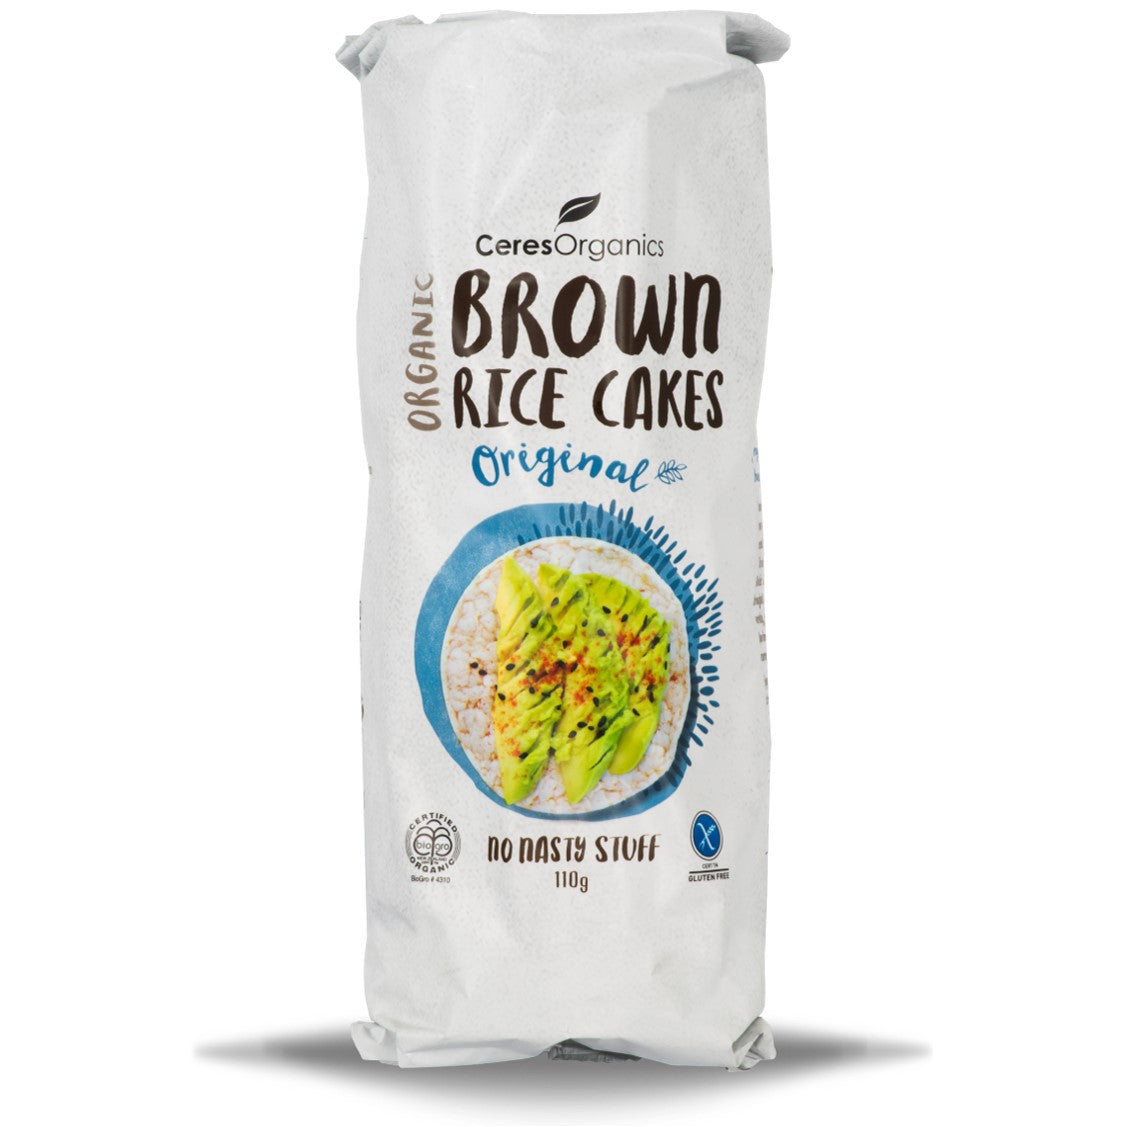 Ceres Organics Brown Rice Cakes - Original, 110 g.